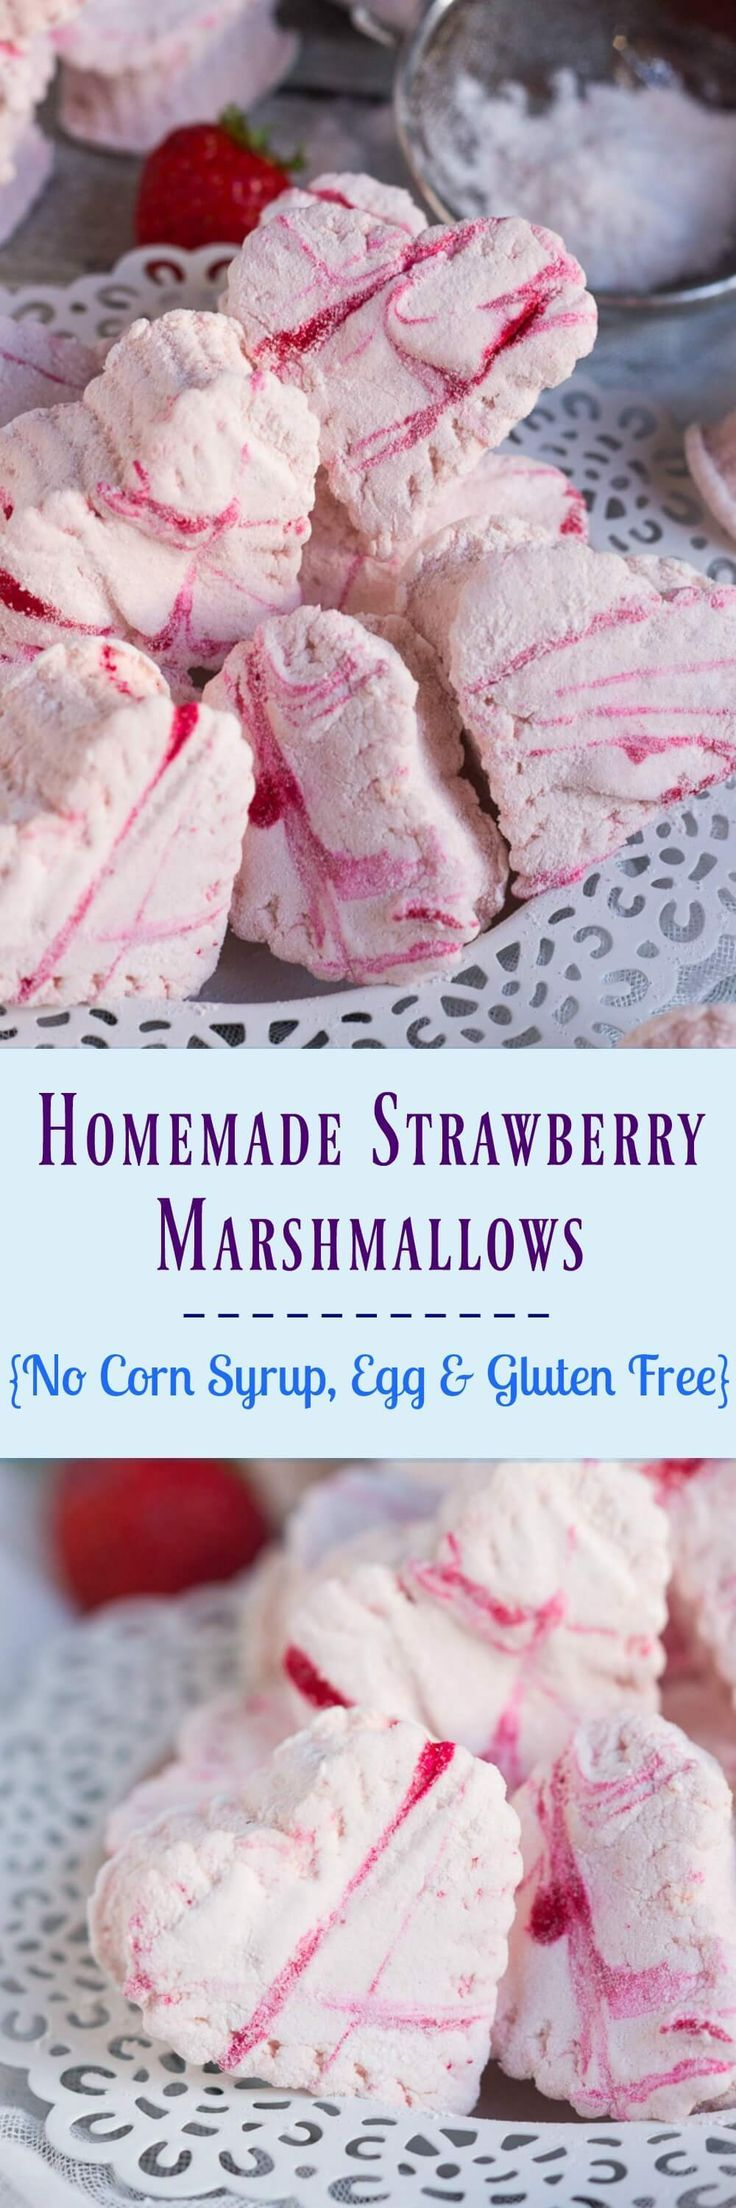 Homemade Strawberry Marshmallows, made with real strawberries, are so delicious you will find it hard to stop at one.  Valentines Day | No Corn Syrup | Egg Free | Dairy Free | Gluten Free